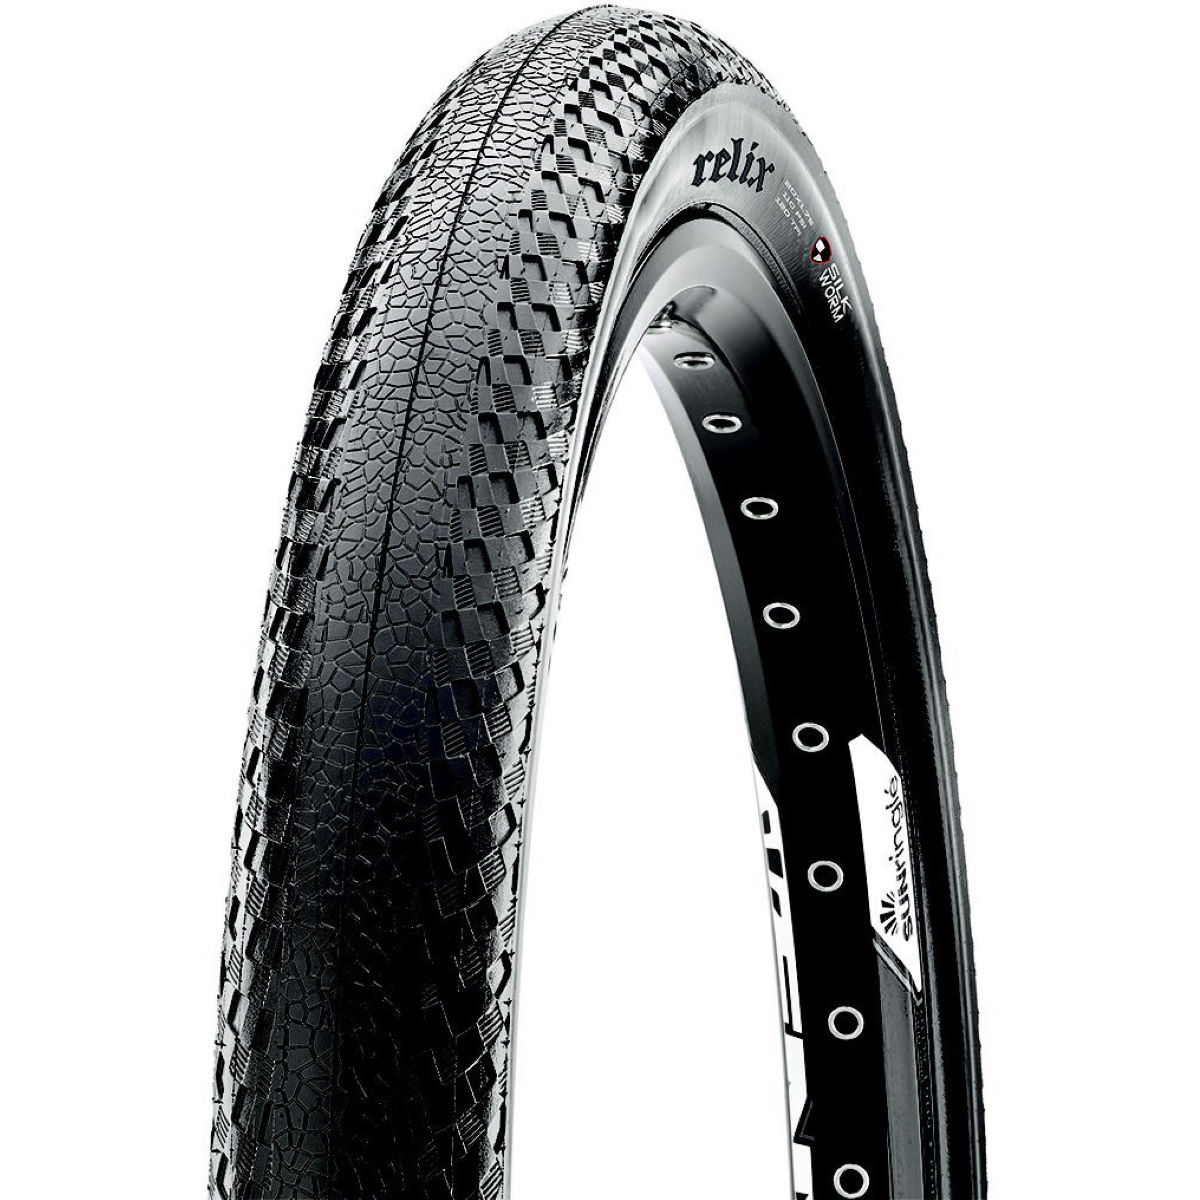 Maxxis Maxxis Relix Tubular Tyre   Tyres